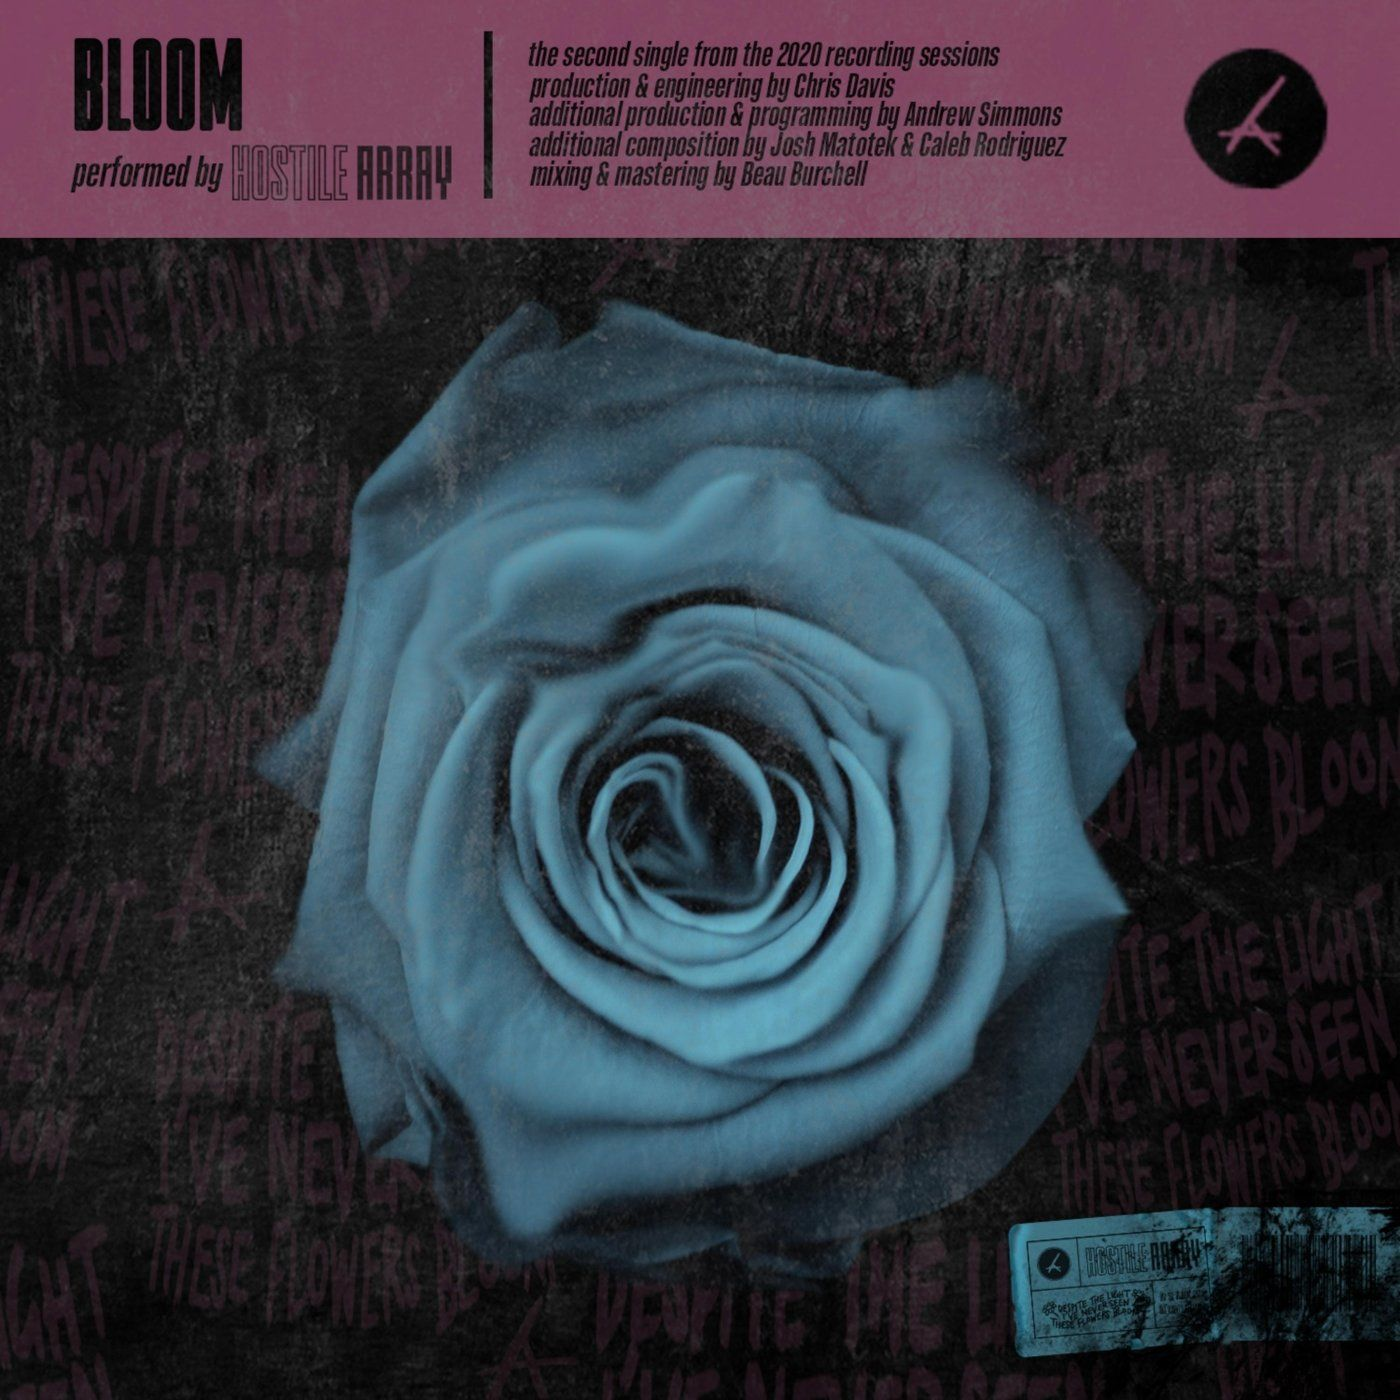 Hostile Array - Bloom [single] (2021)